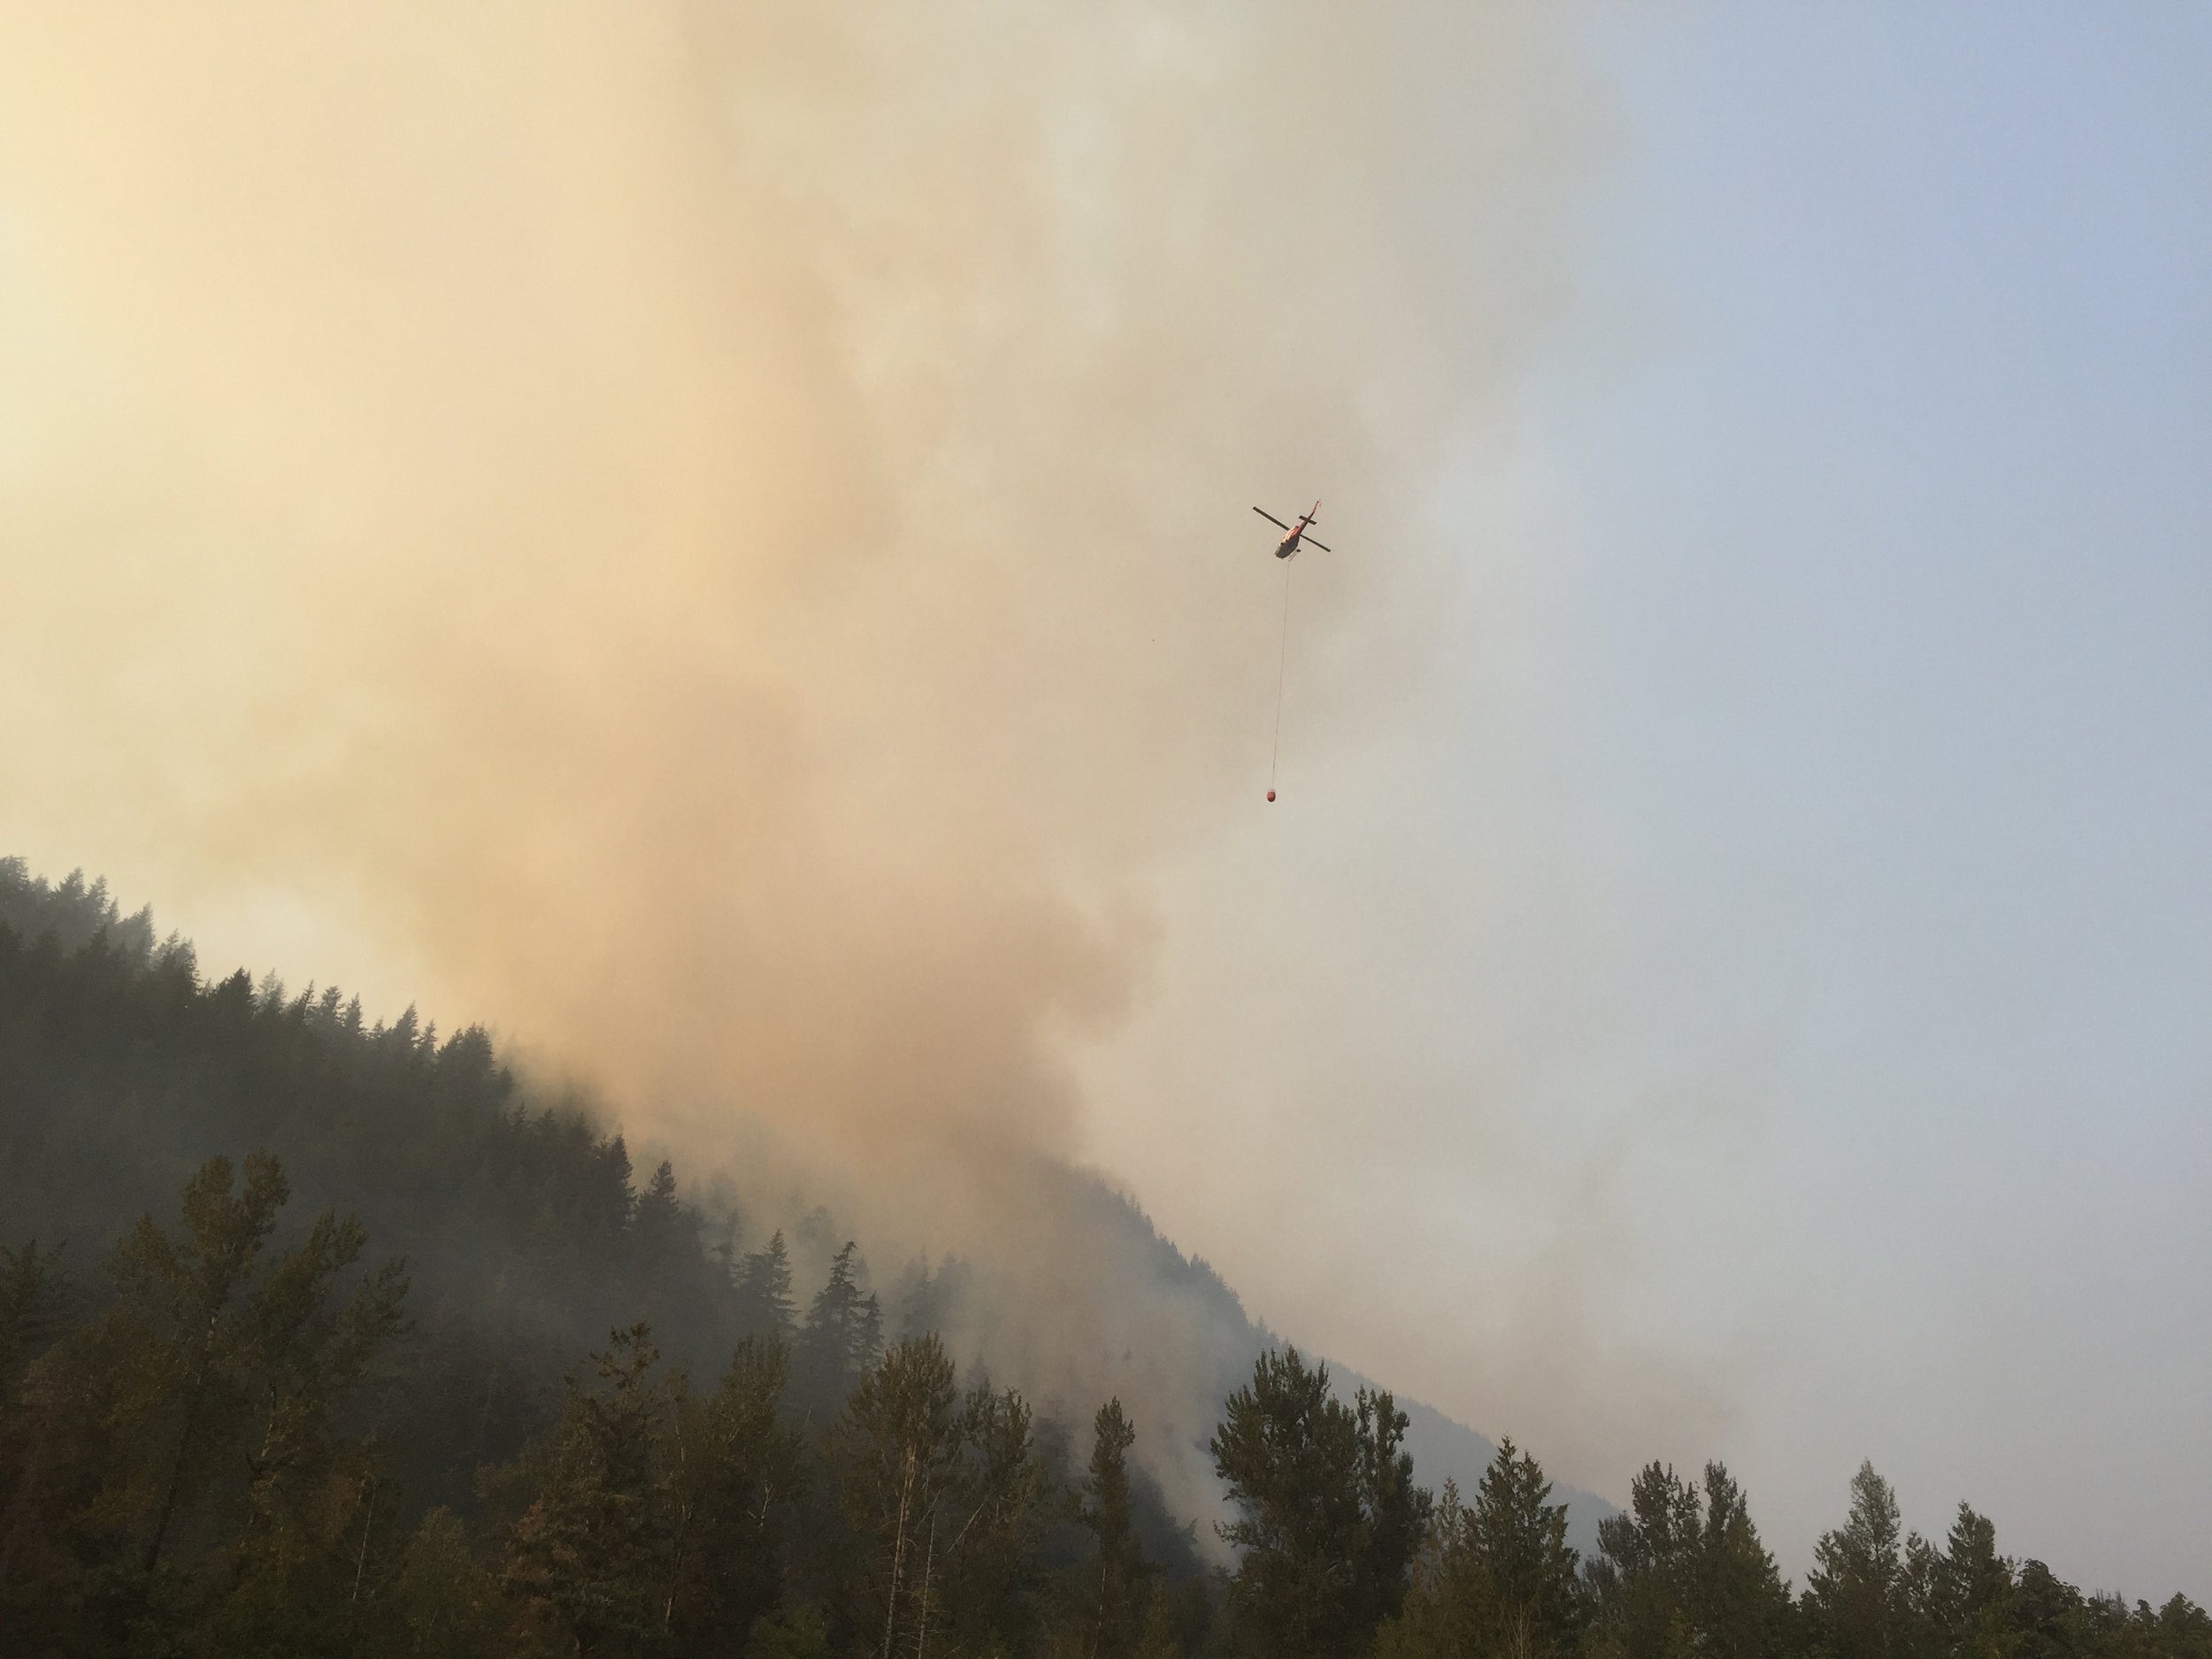 The seeming futility of human efforts against wildfires.